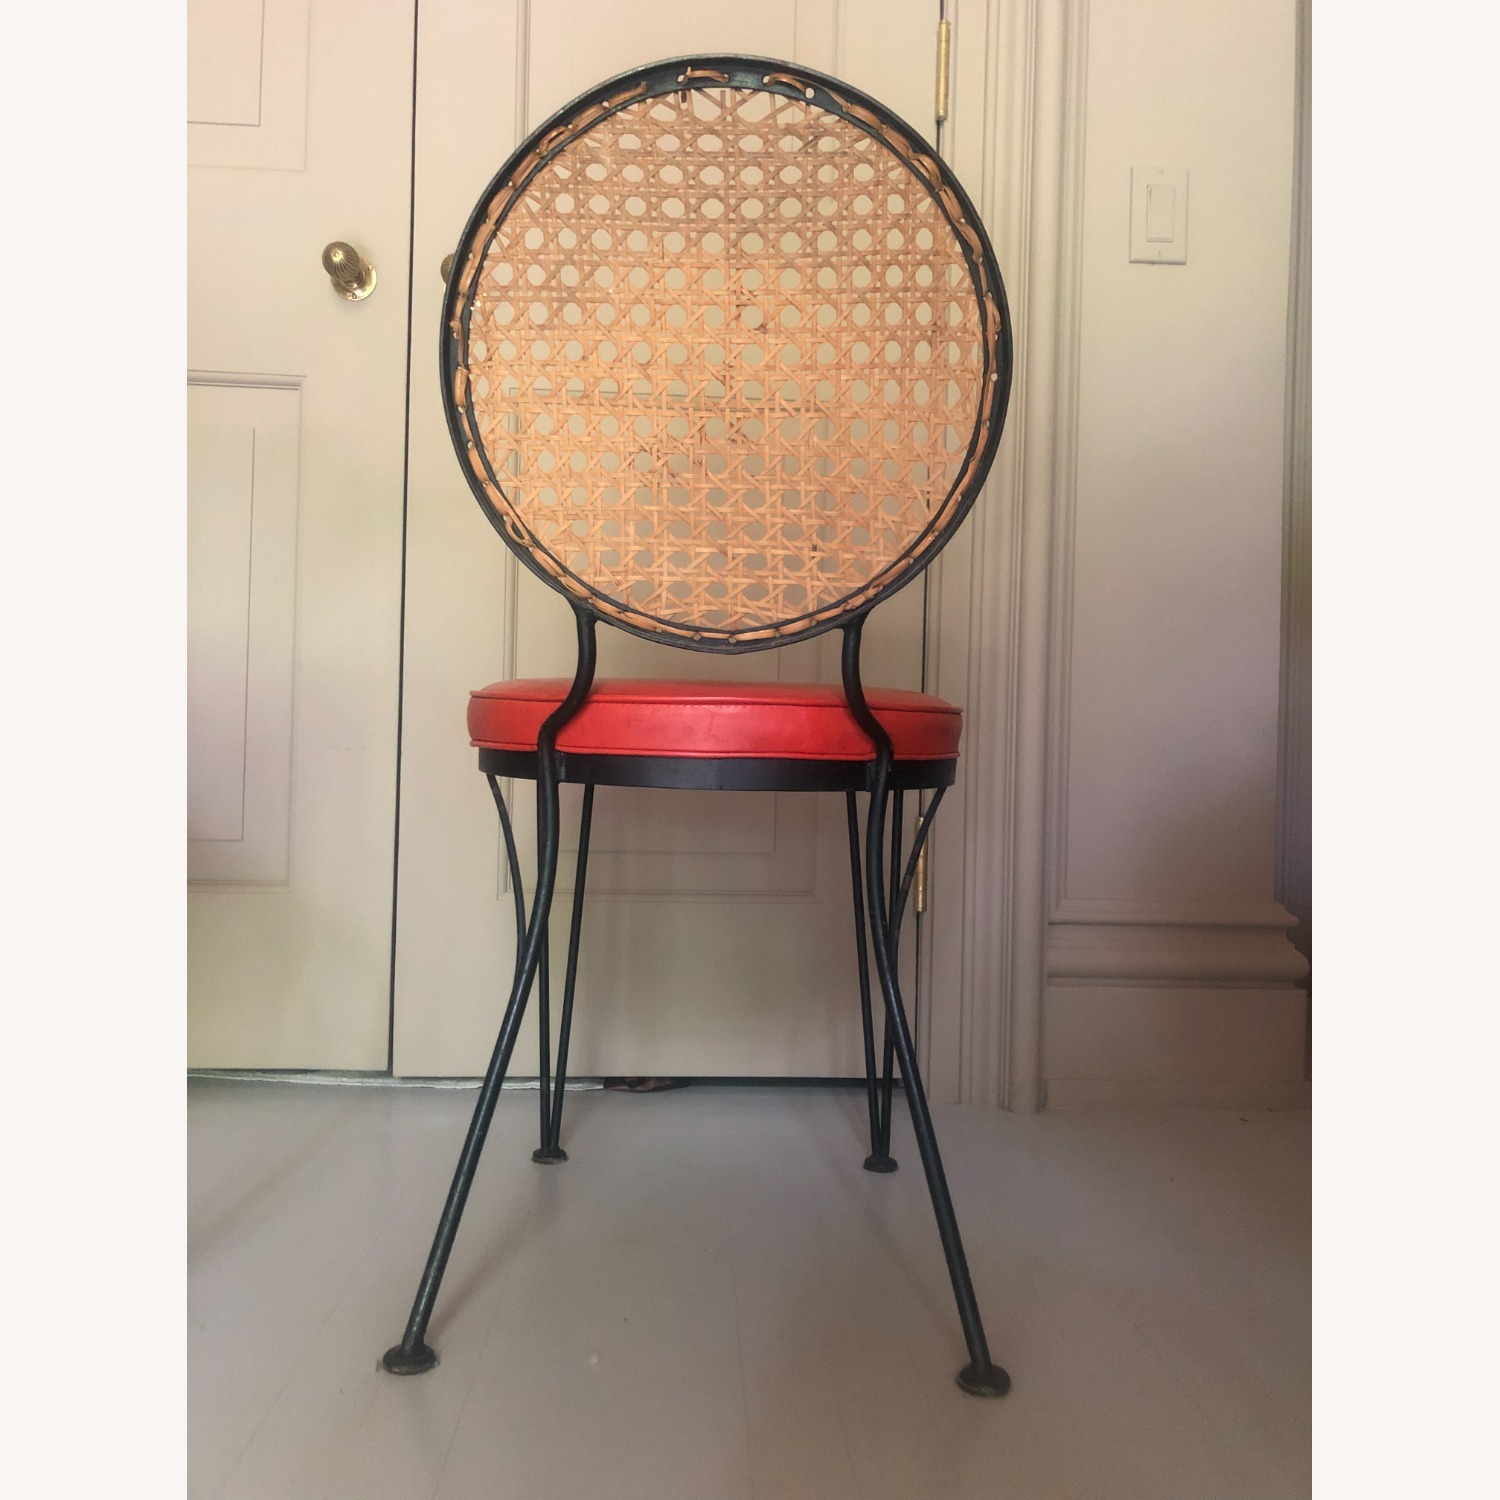 Vintage 1950s French Cane Chairs - image-1